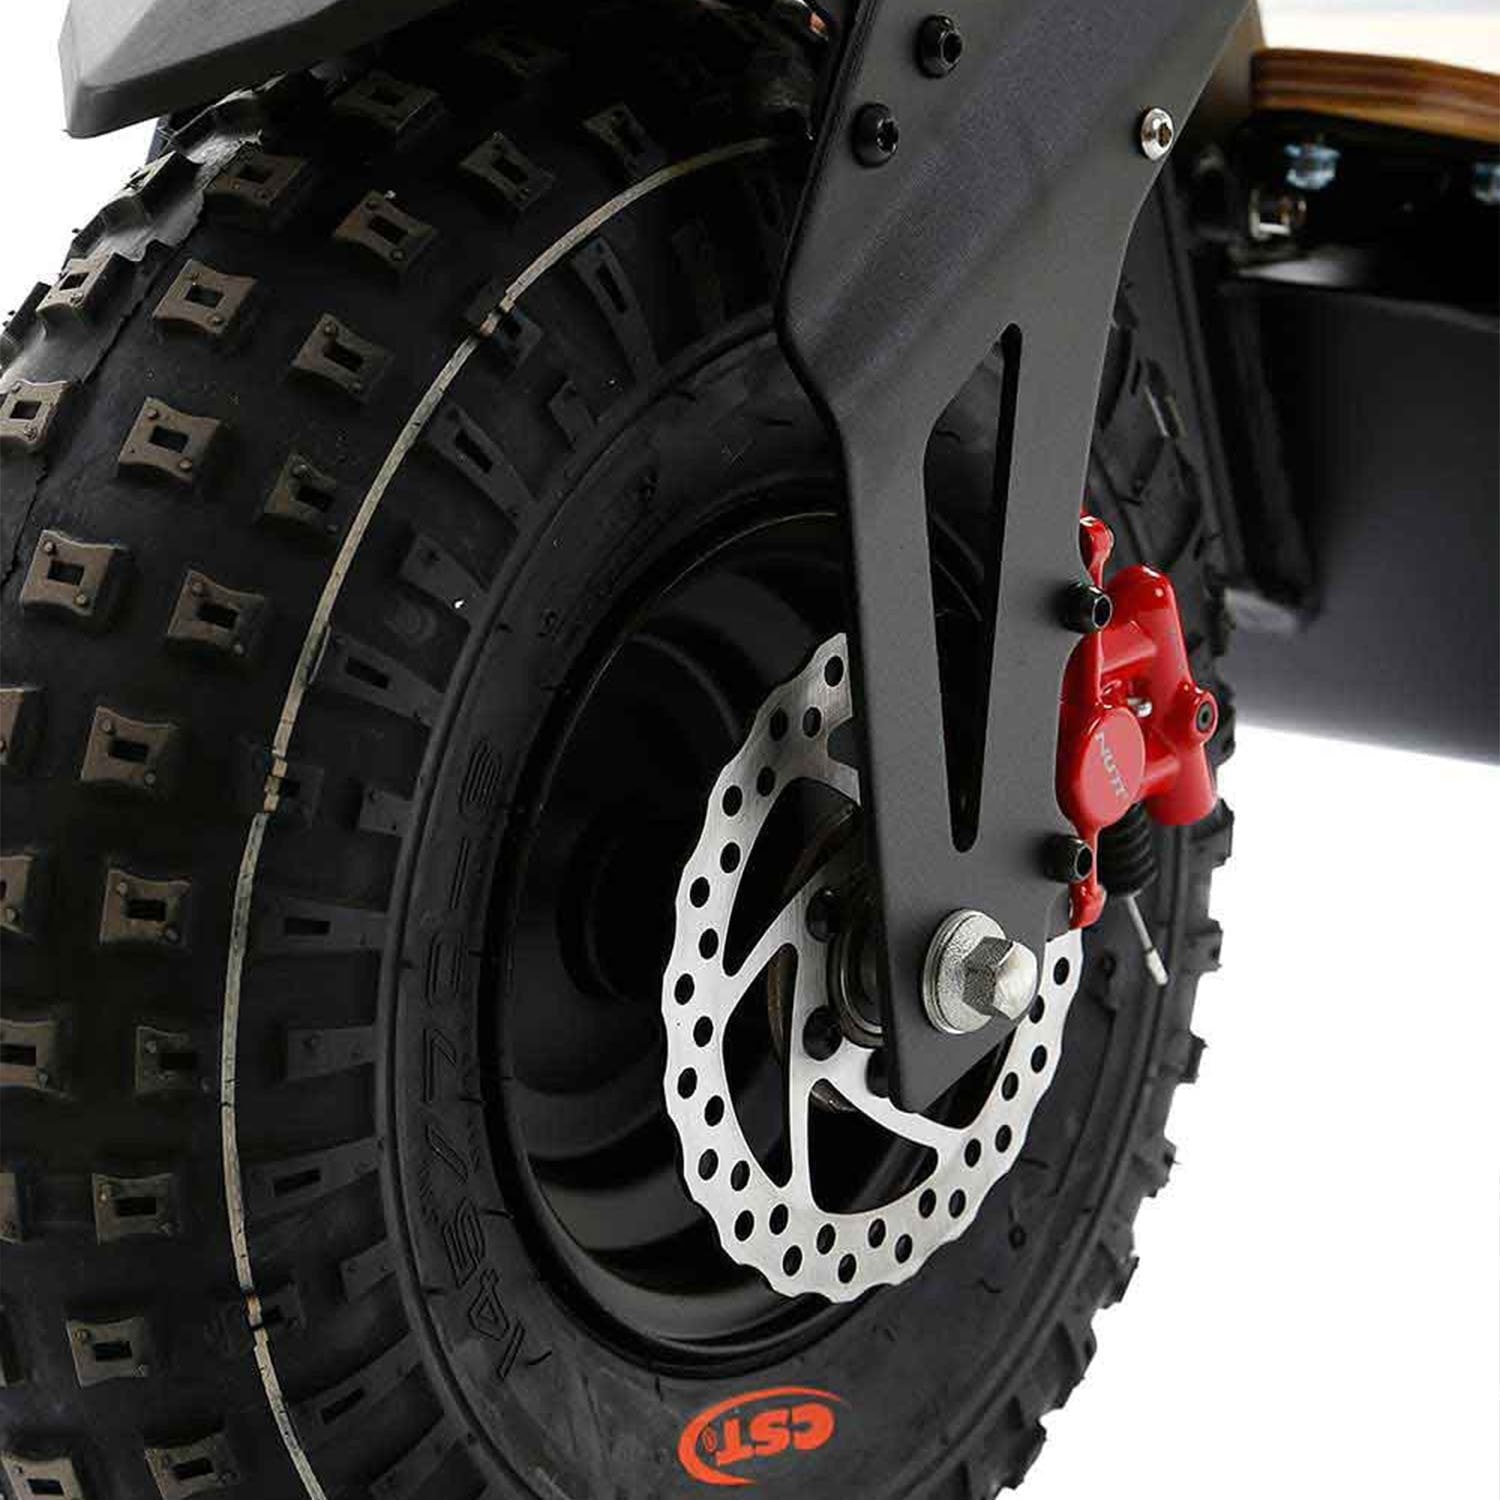 SXT Monster Off road Electric Scooter Front Tire Disk